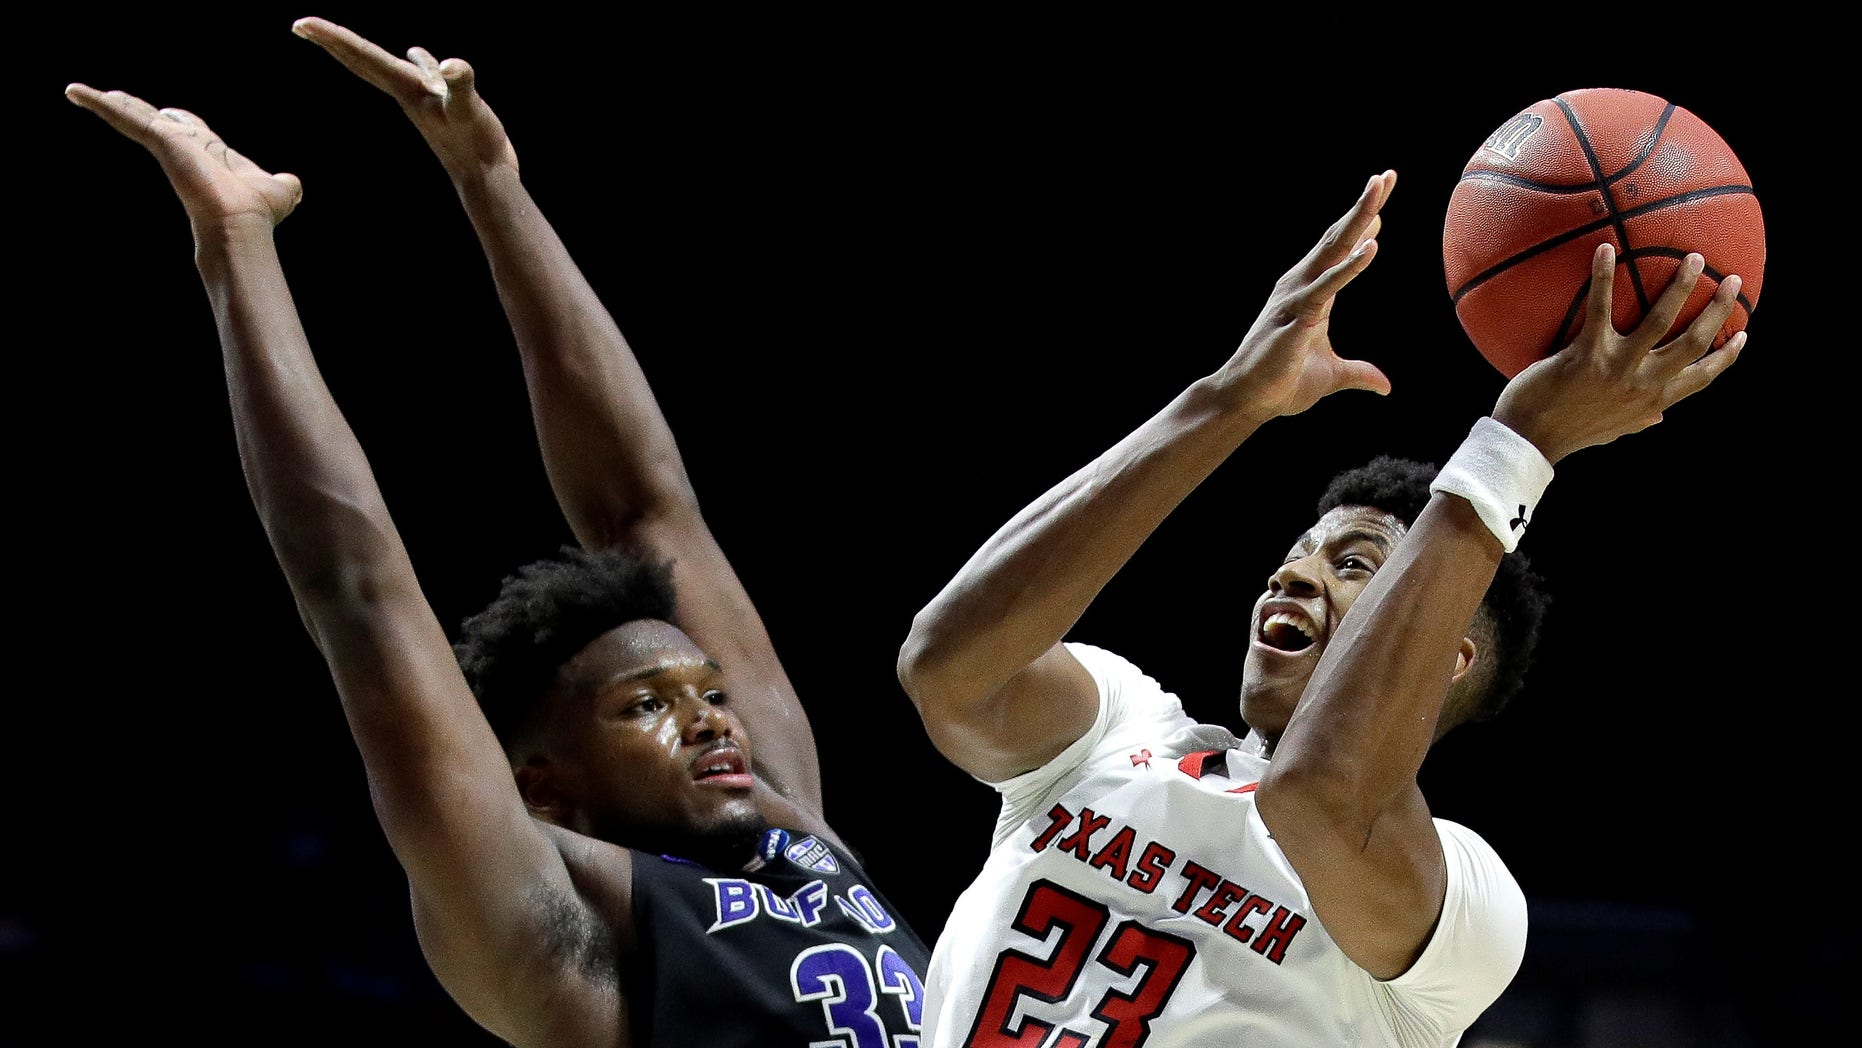 Texas Tech's Jarrett Culver (23) shoots past Buffalo's Nick Perkins (33) during the second half of a second-round men's college basketball game in the NCAA Tournament.